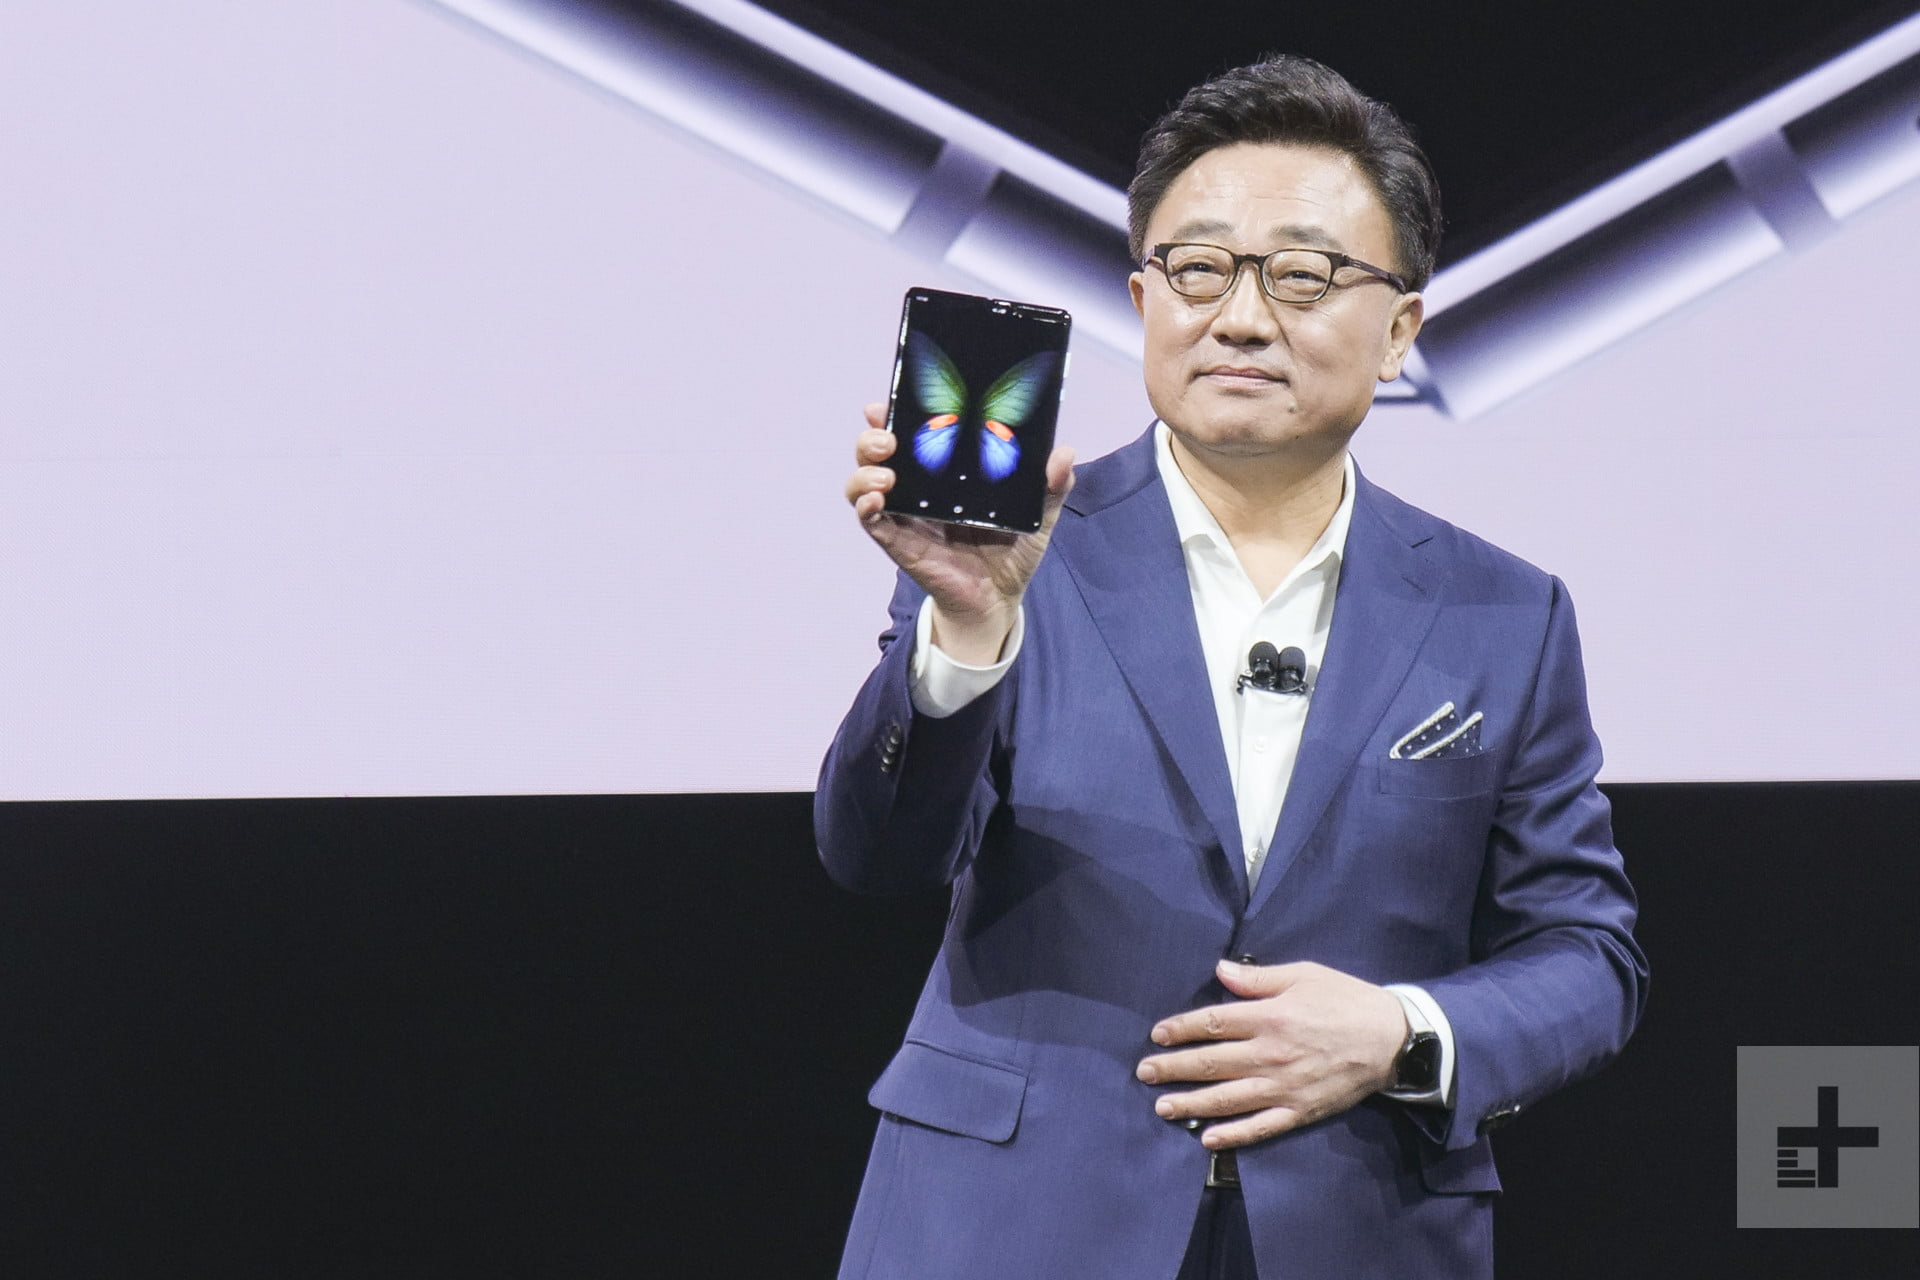 Folding smartphones hinge on the success of the Samsung Galaxy Fold